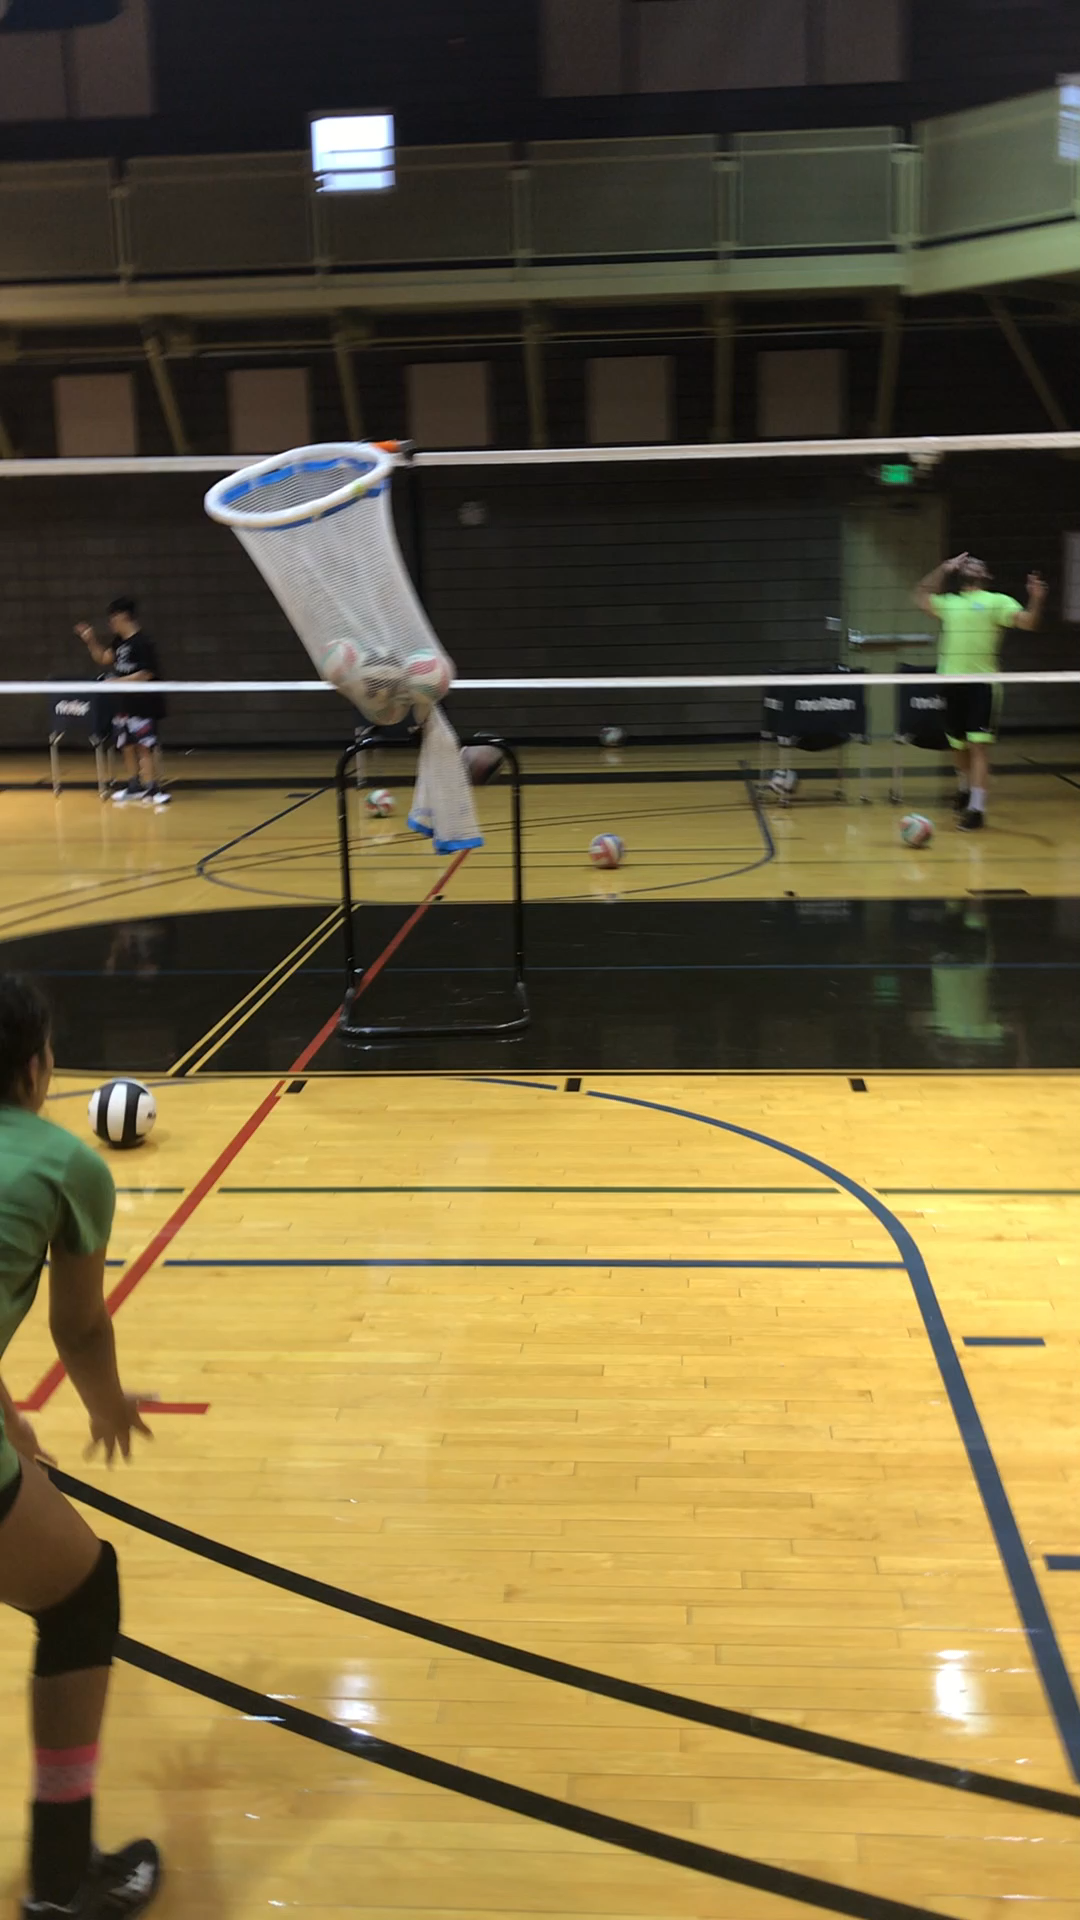 4 Volleyball Passing Drills How To Get Better At Passing In Volleyball Video Video Volleyball Tips Volleyball Drills Volleyball Passing Drills